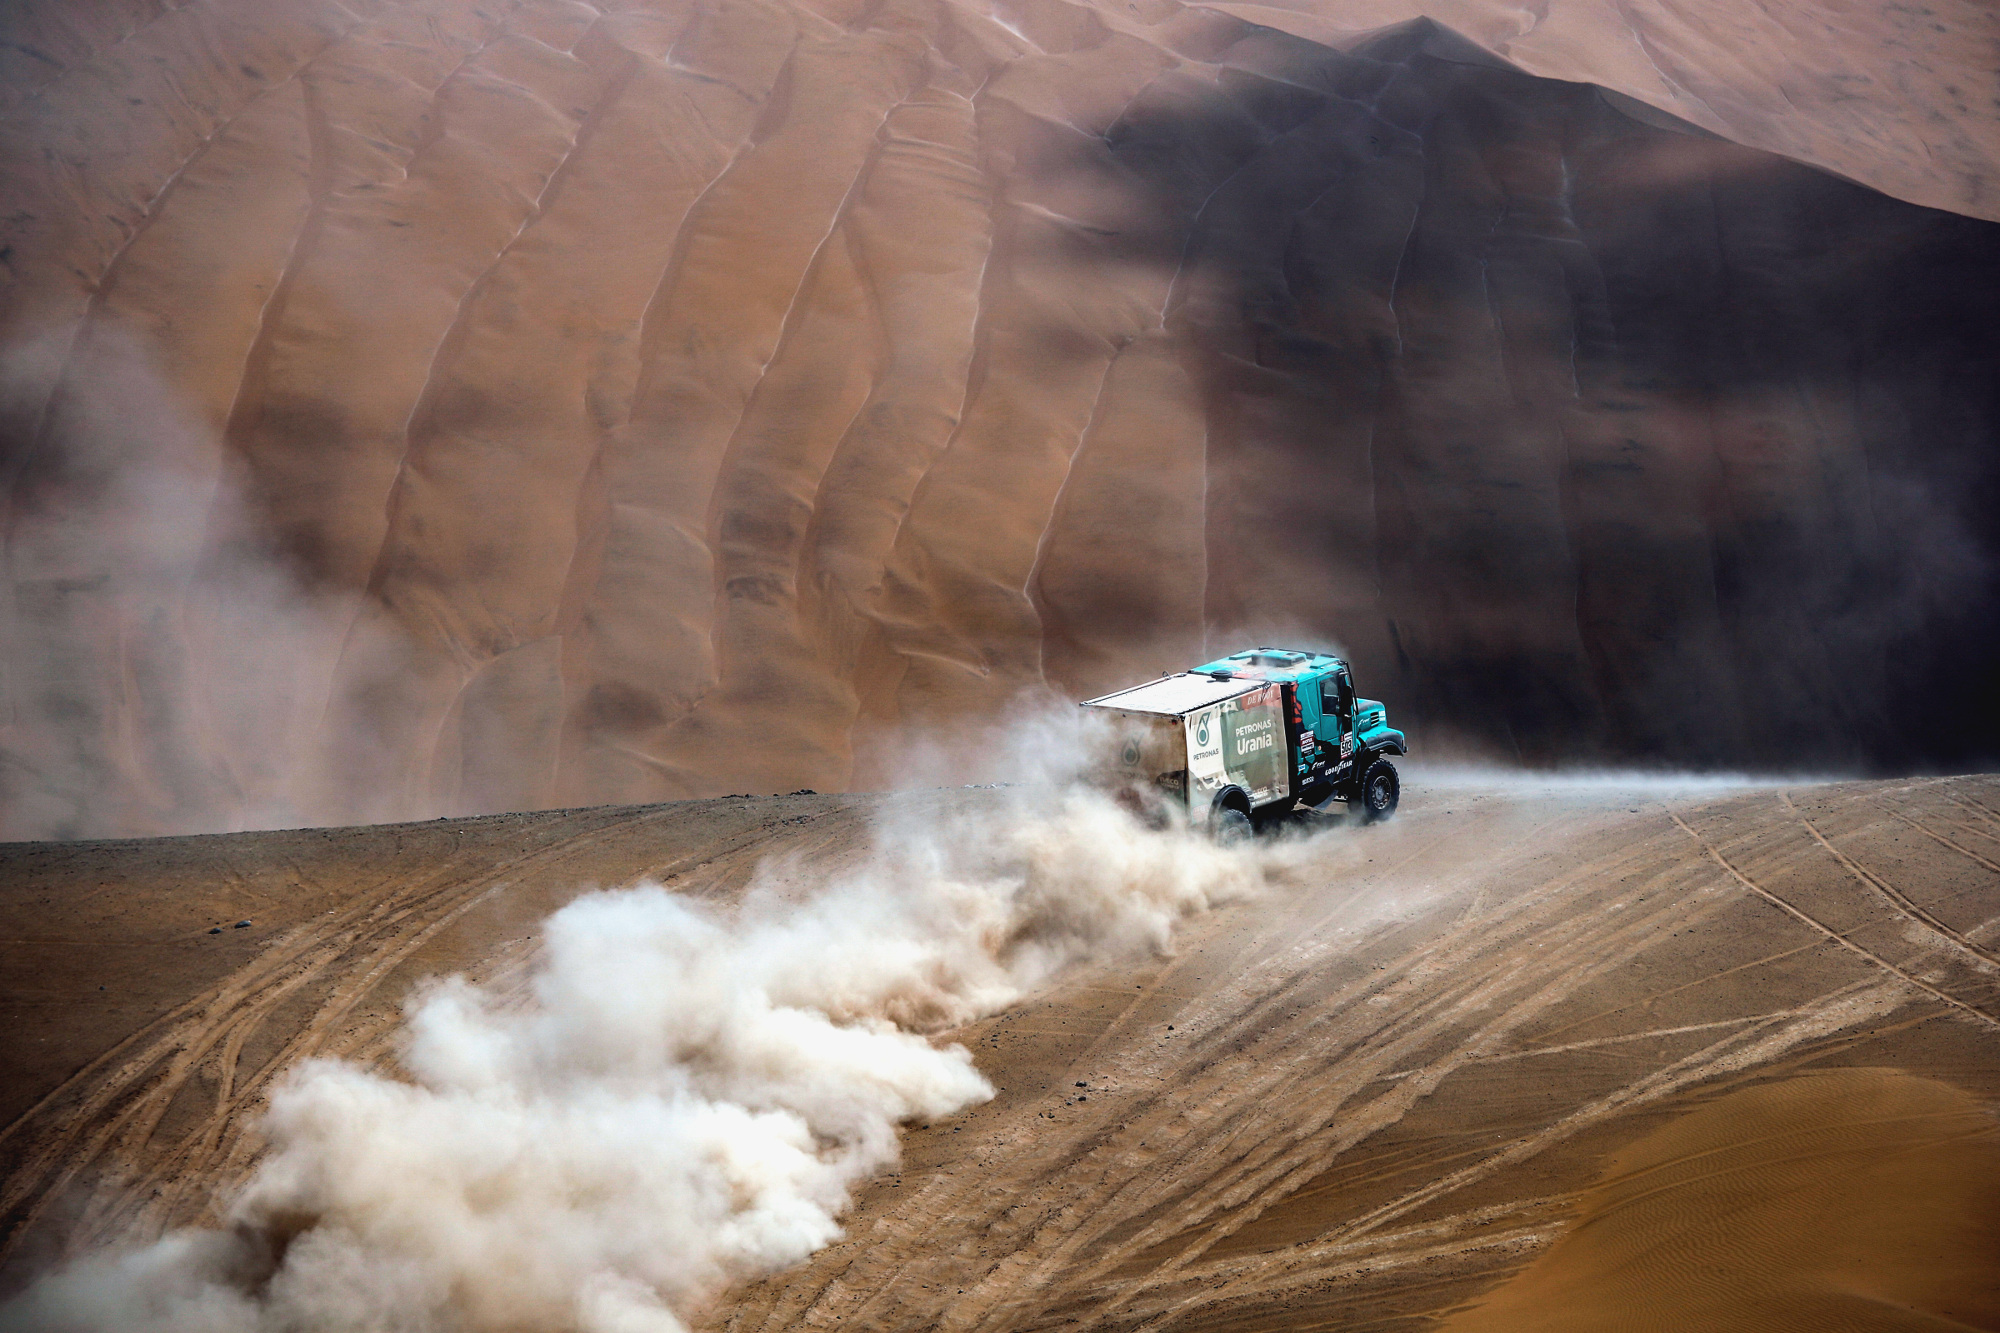 503 DE ROOY Gerard (nld); RODEWALD Darek (pol); TORRALLARDONA Moises (spa); Iveco; Petronas Team de Rooy Iveco; Truck; Camion; action during the Dakar 2019; Stage 5; Tacna - Arequipa; peru; on january 11 - Photo